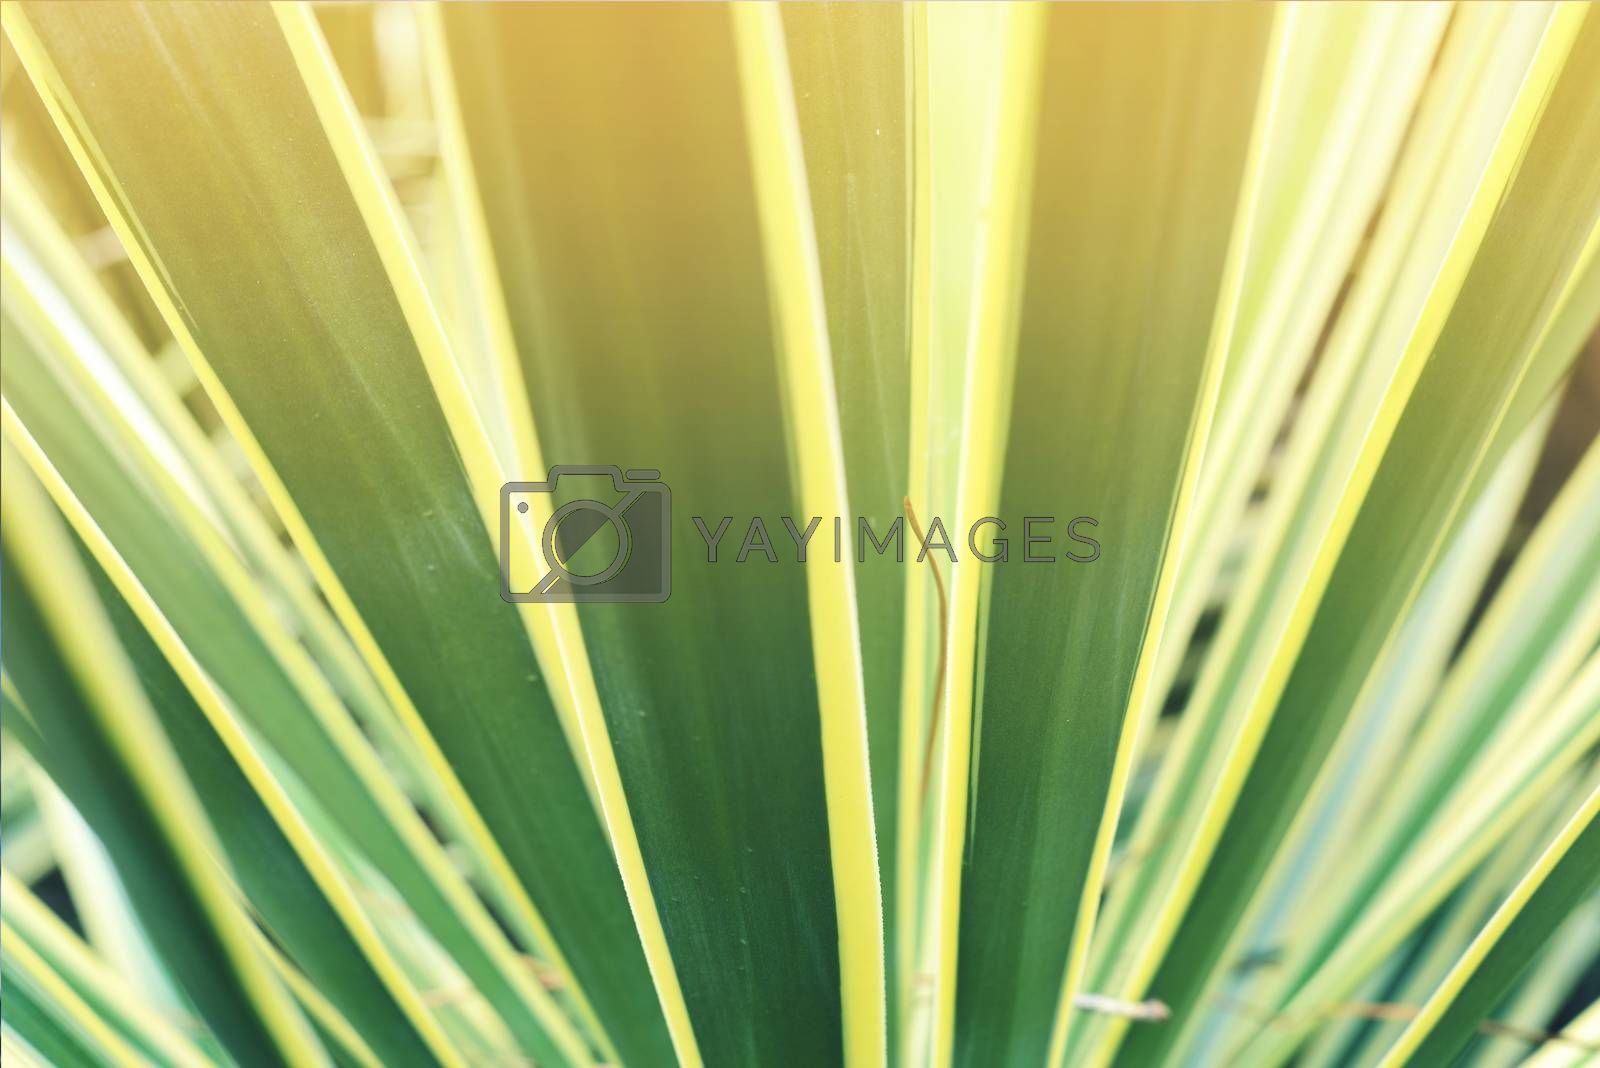 Tropical plant leaf closeup with vintage filter effect and blur background.